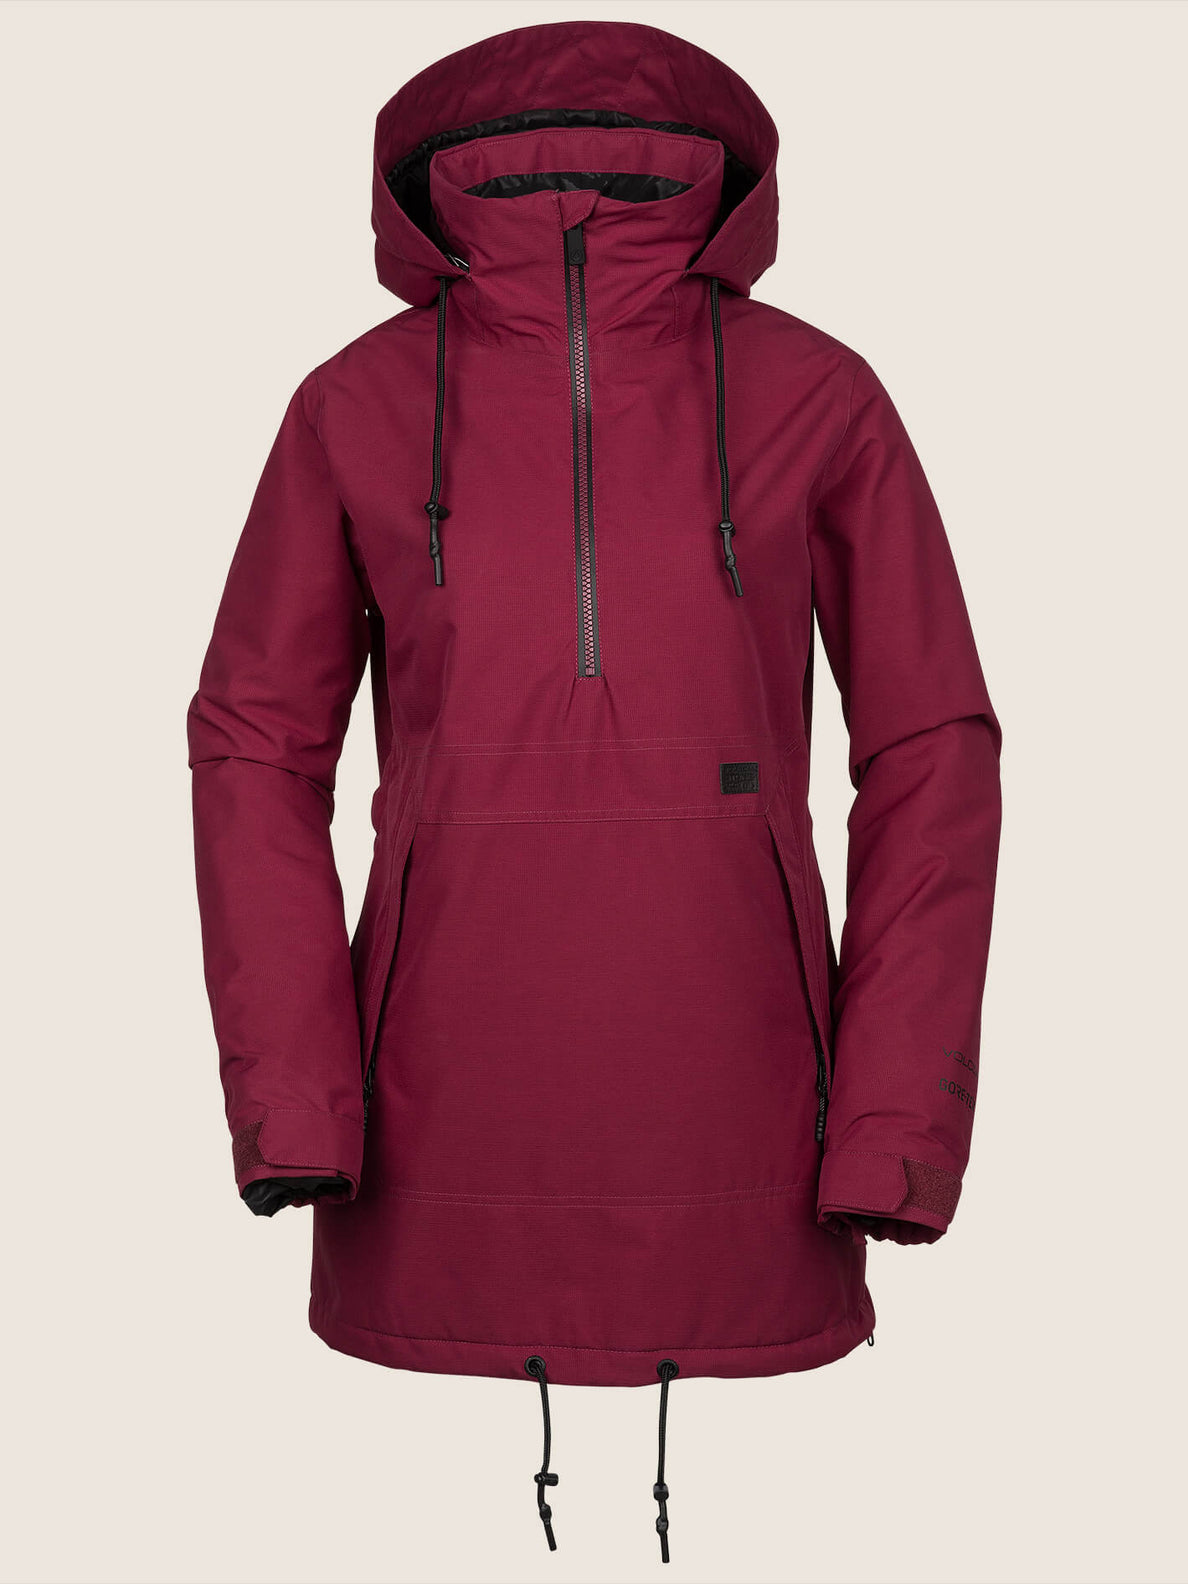 Fern Insulated Gore-tex Pullover Jacket In Magenta, Front View